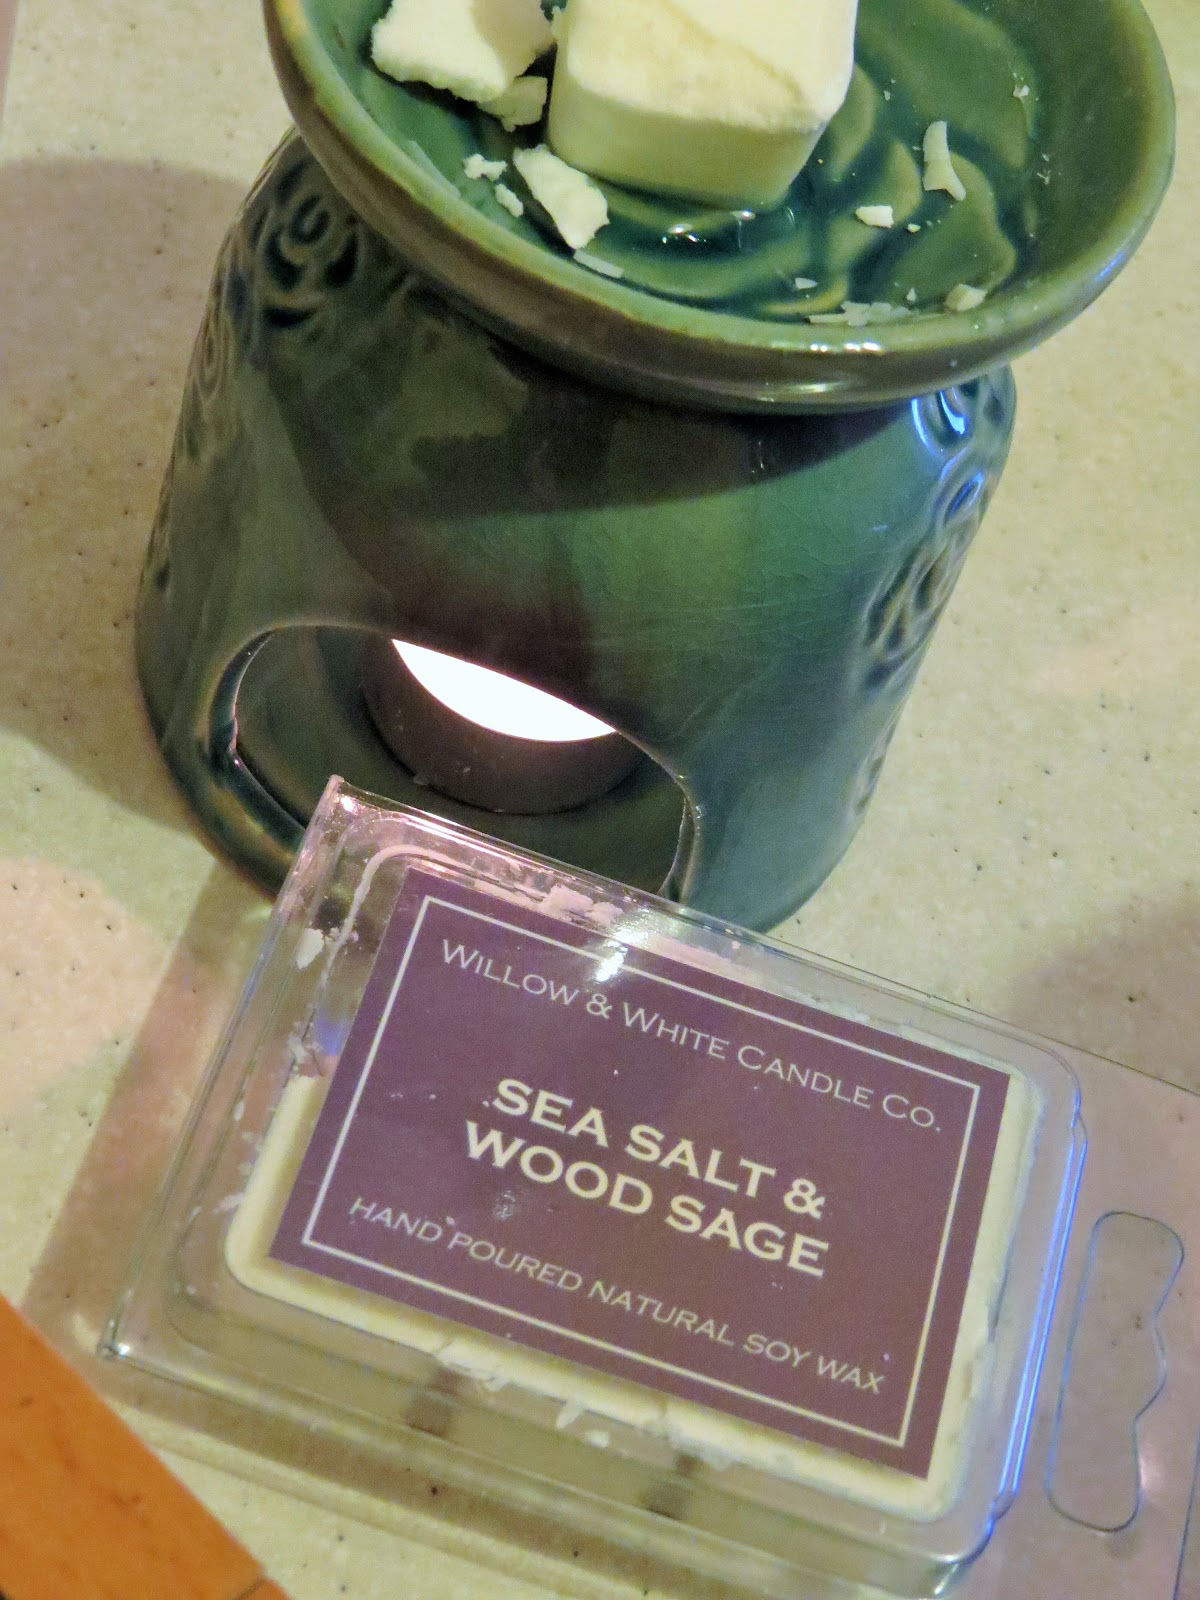 Beauty Balm: Willow & White Candle Co: Sea Salt & Wood Sage Candle Melts